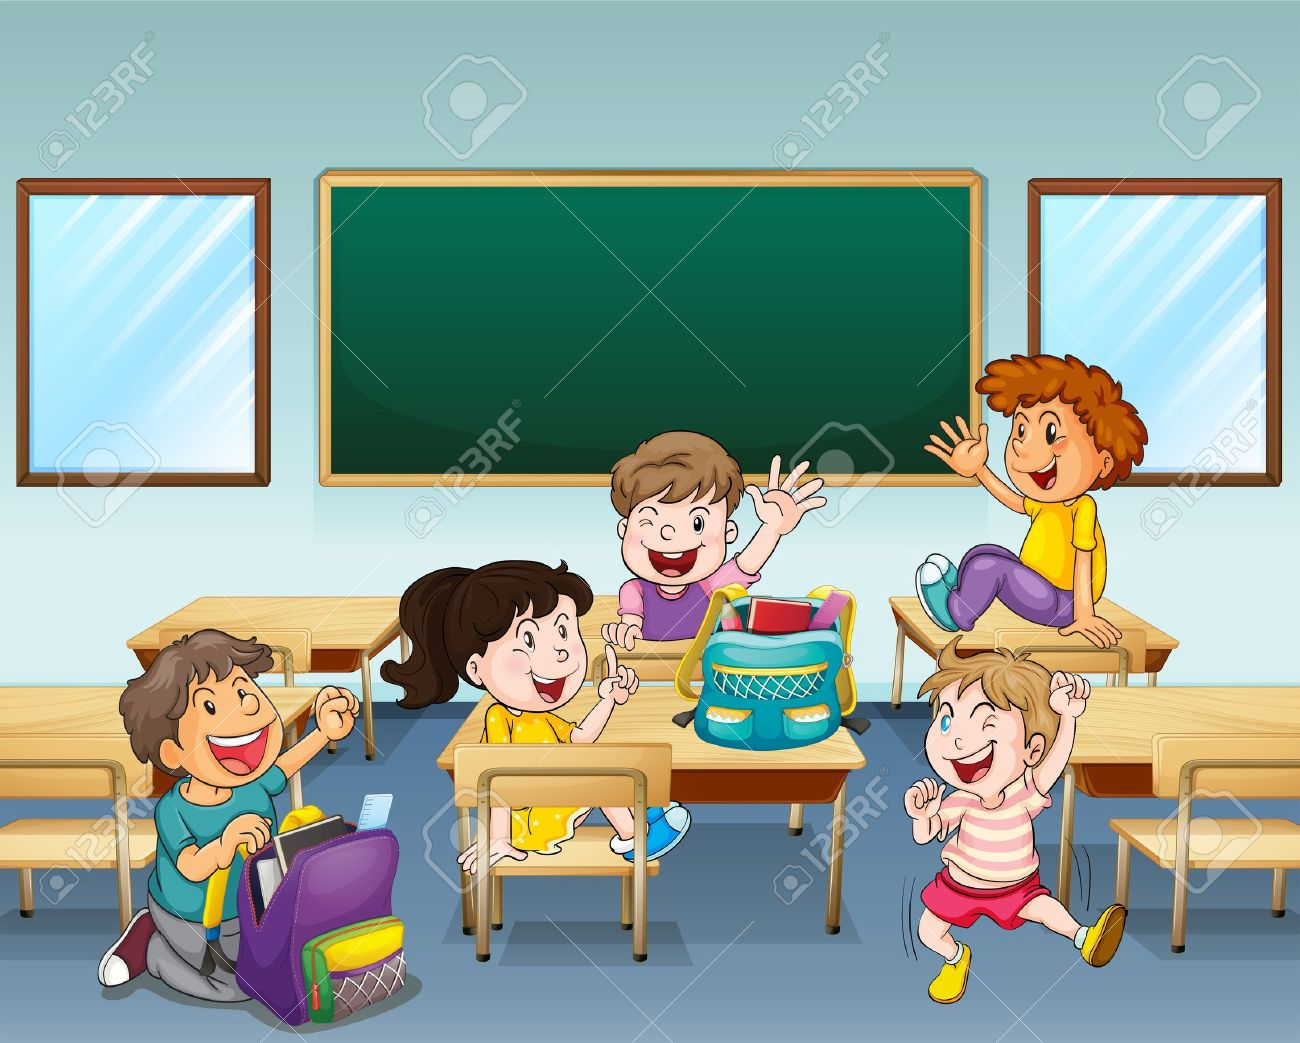 illustration of happy students inside a classroom royalty free rh 123rf com students sitting in classroom clipart students working in classroom clipart